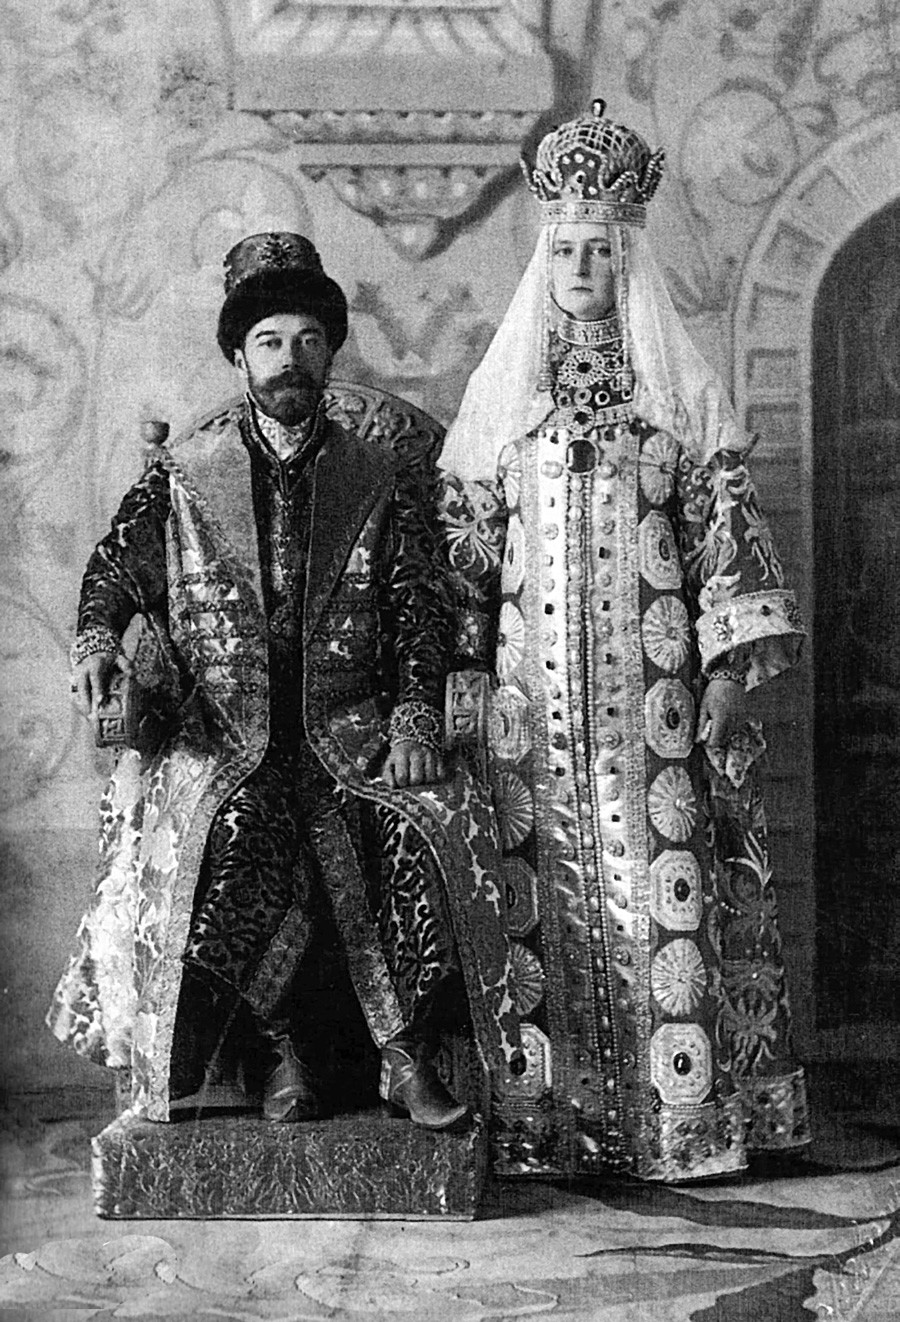 Nicholas II of Russia and Alexandra Fyodorovna (Alix of Hesse) in Russian dresses. 1913, celebration of 300th anniversary of the Romanov dynasty.